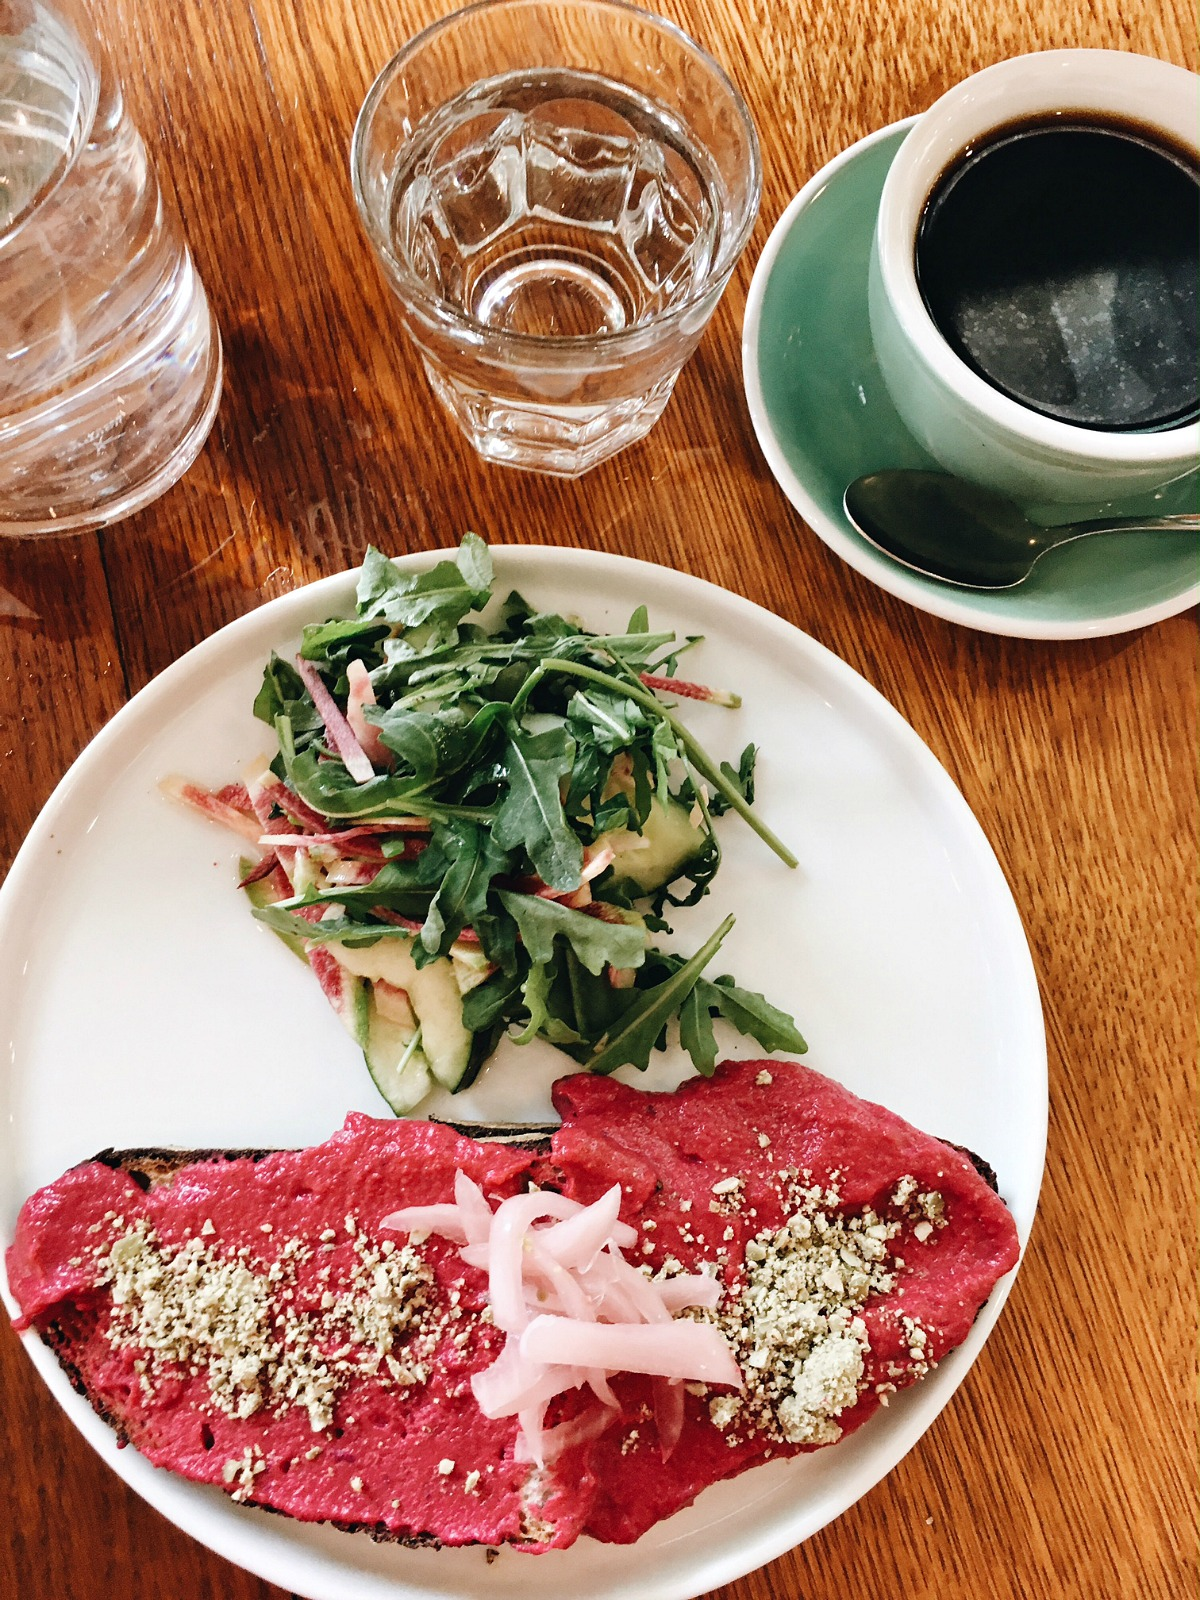 New York Fashion Week Diary : Vegan Brunch at Citizens of Chelsea